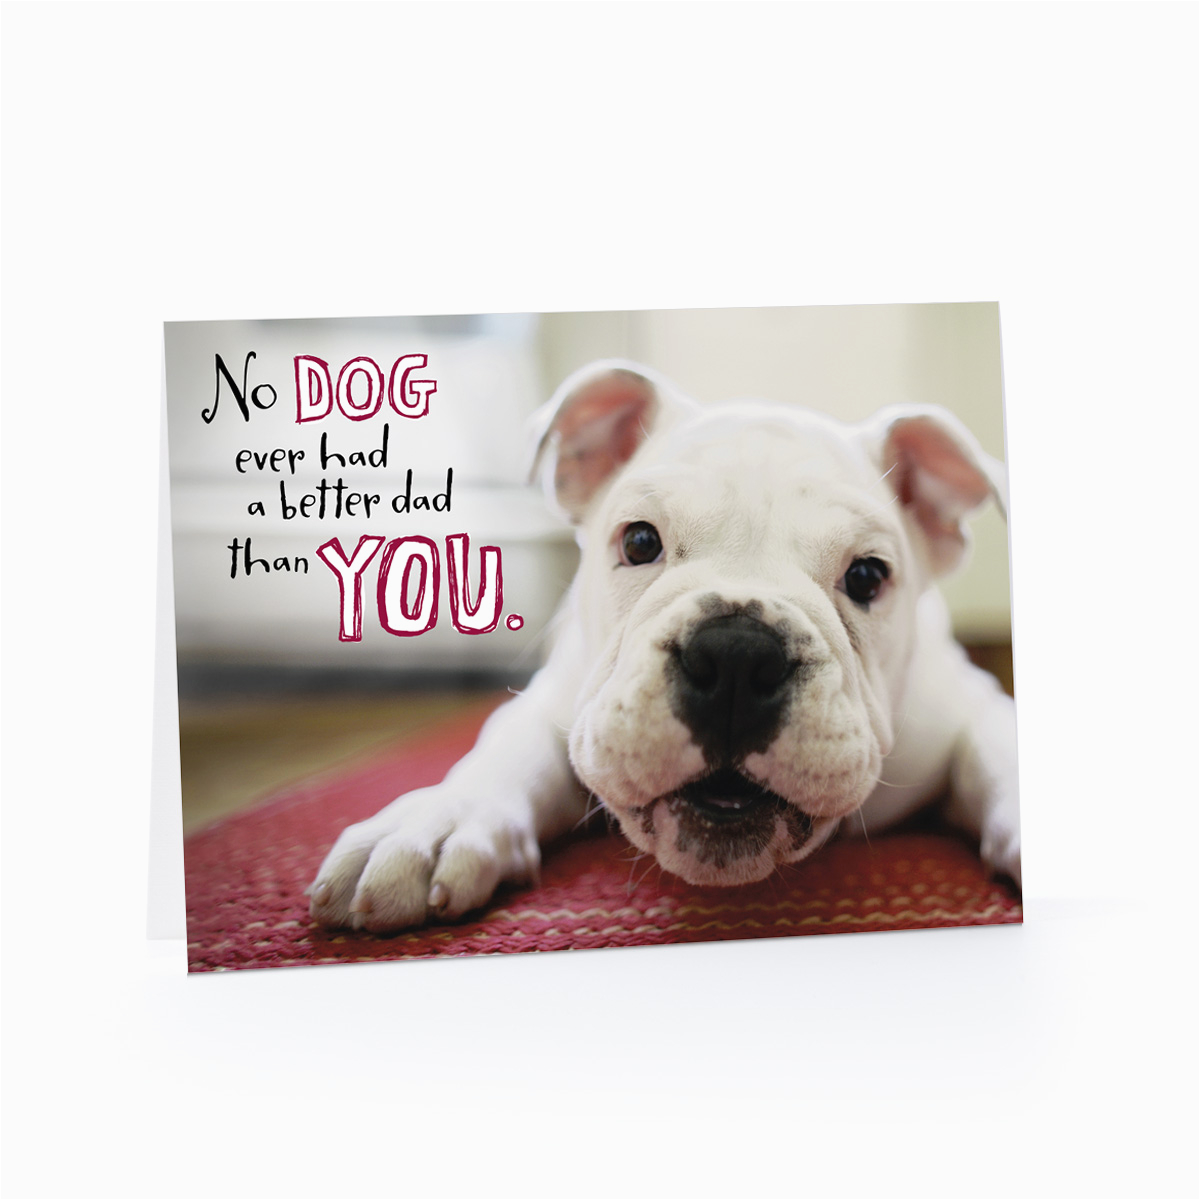 Birthday Cards With Dogs On Them The Gallery For Gt Card